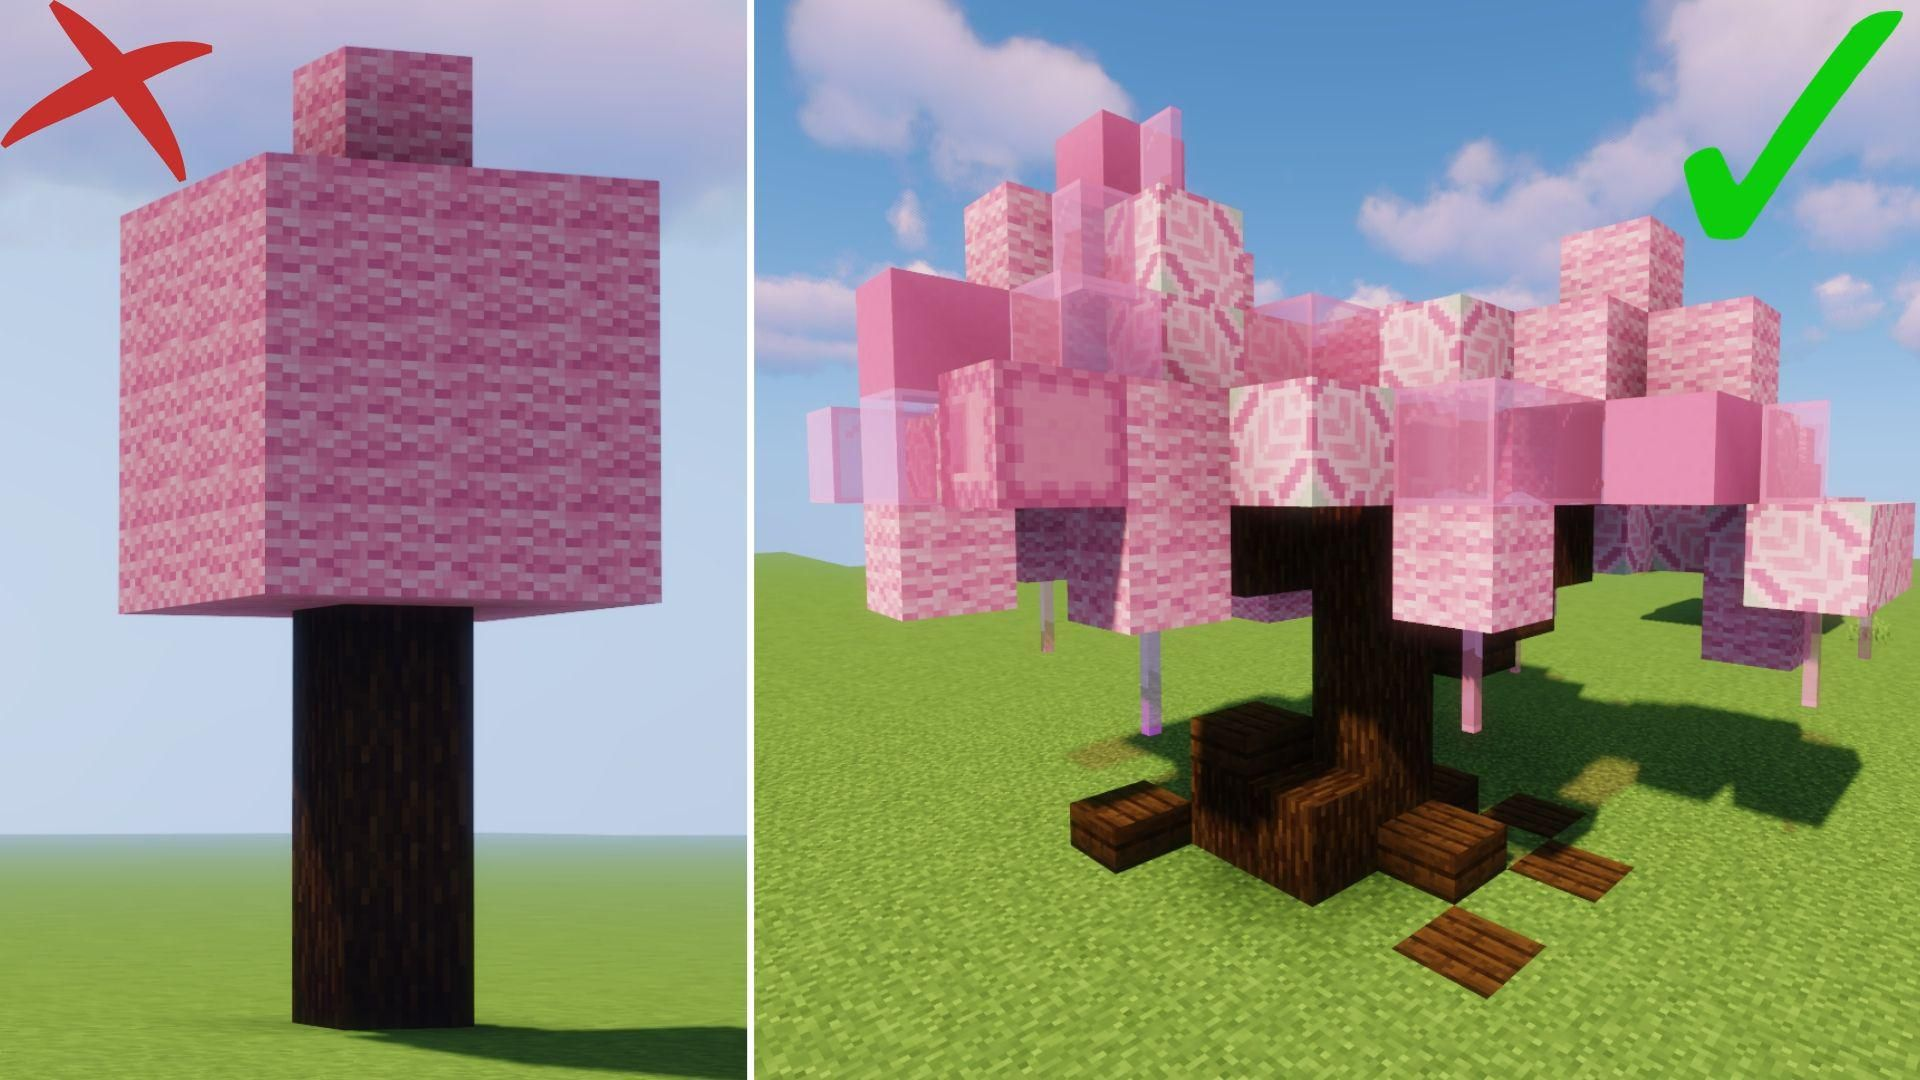 I Ve Been Building A Lot Of Sakura Cherry Blossom Trees Lately So I Decided To Make A Tutorial About Minecraft Designs Minecraft Creations Minecraft Projects